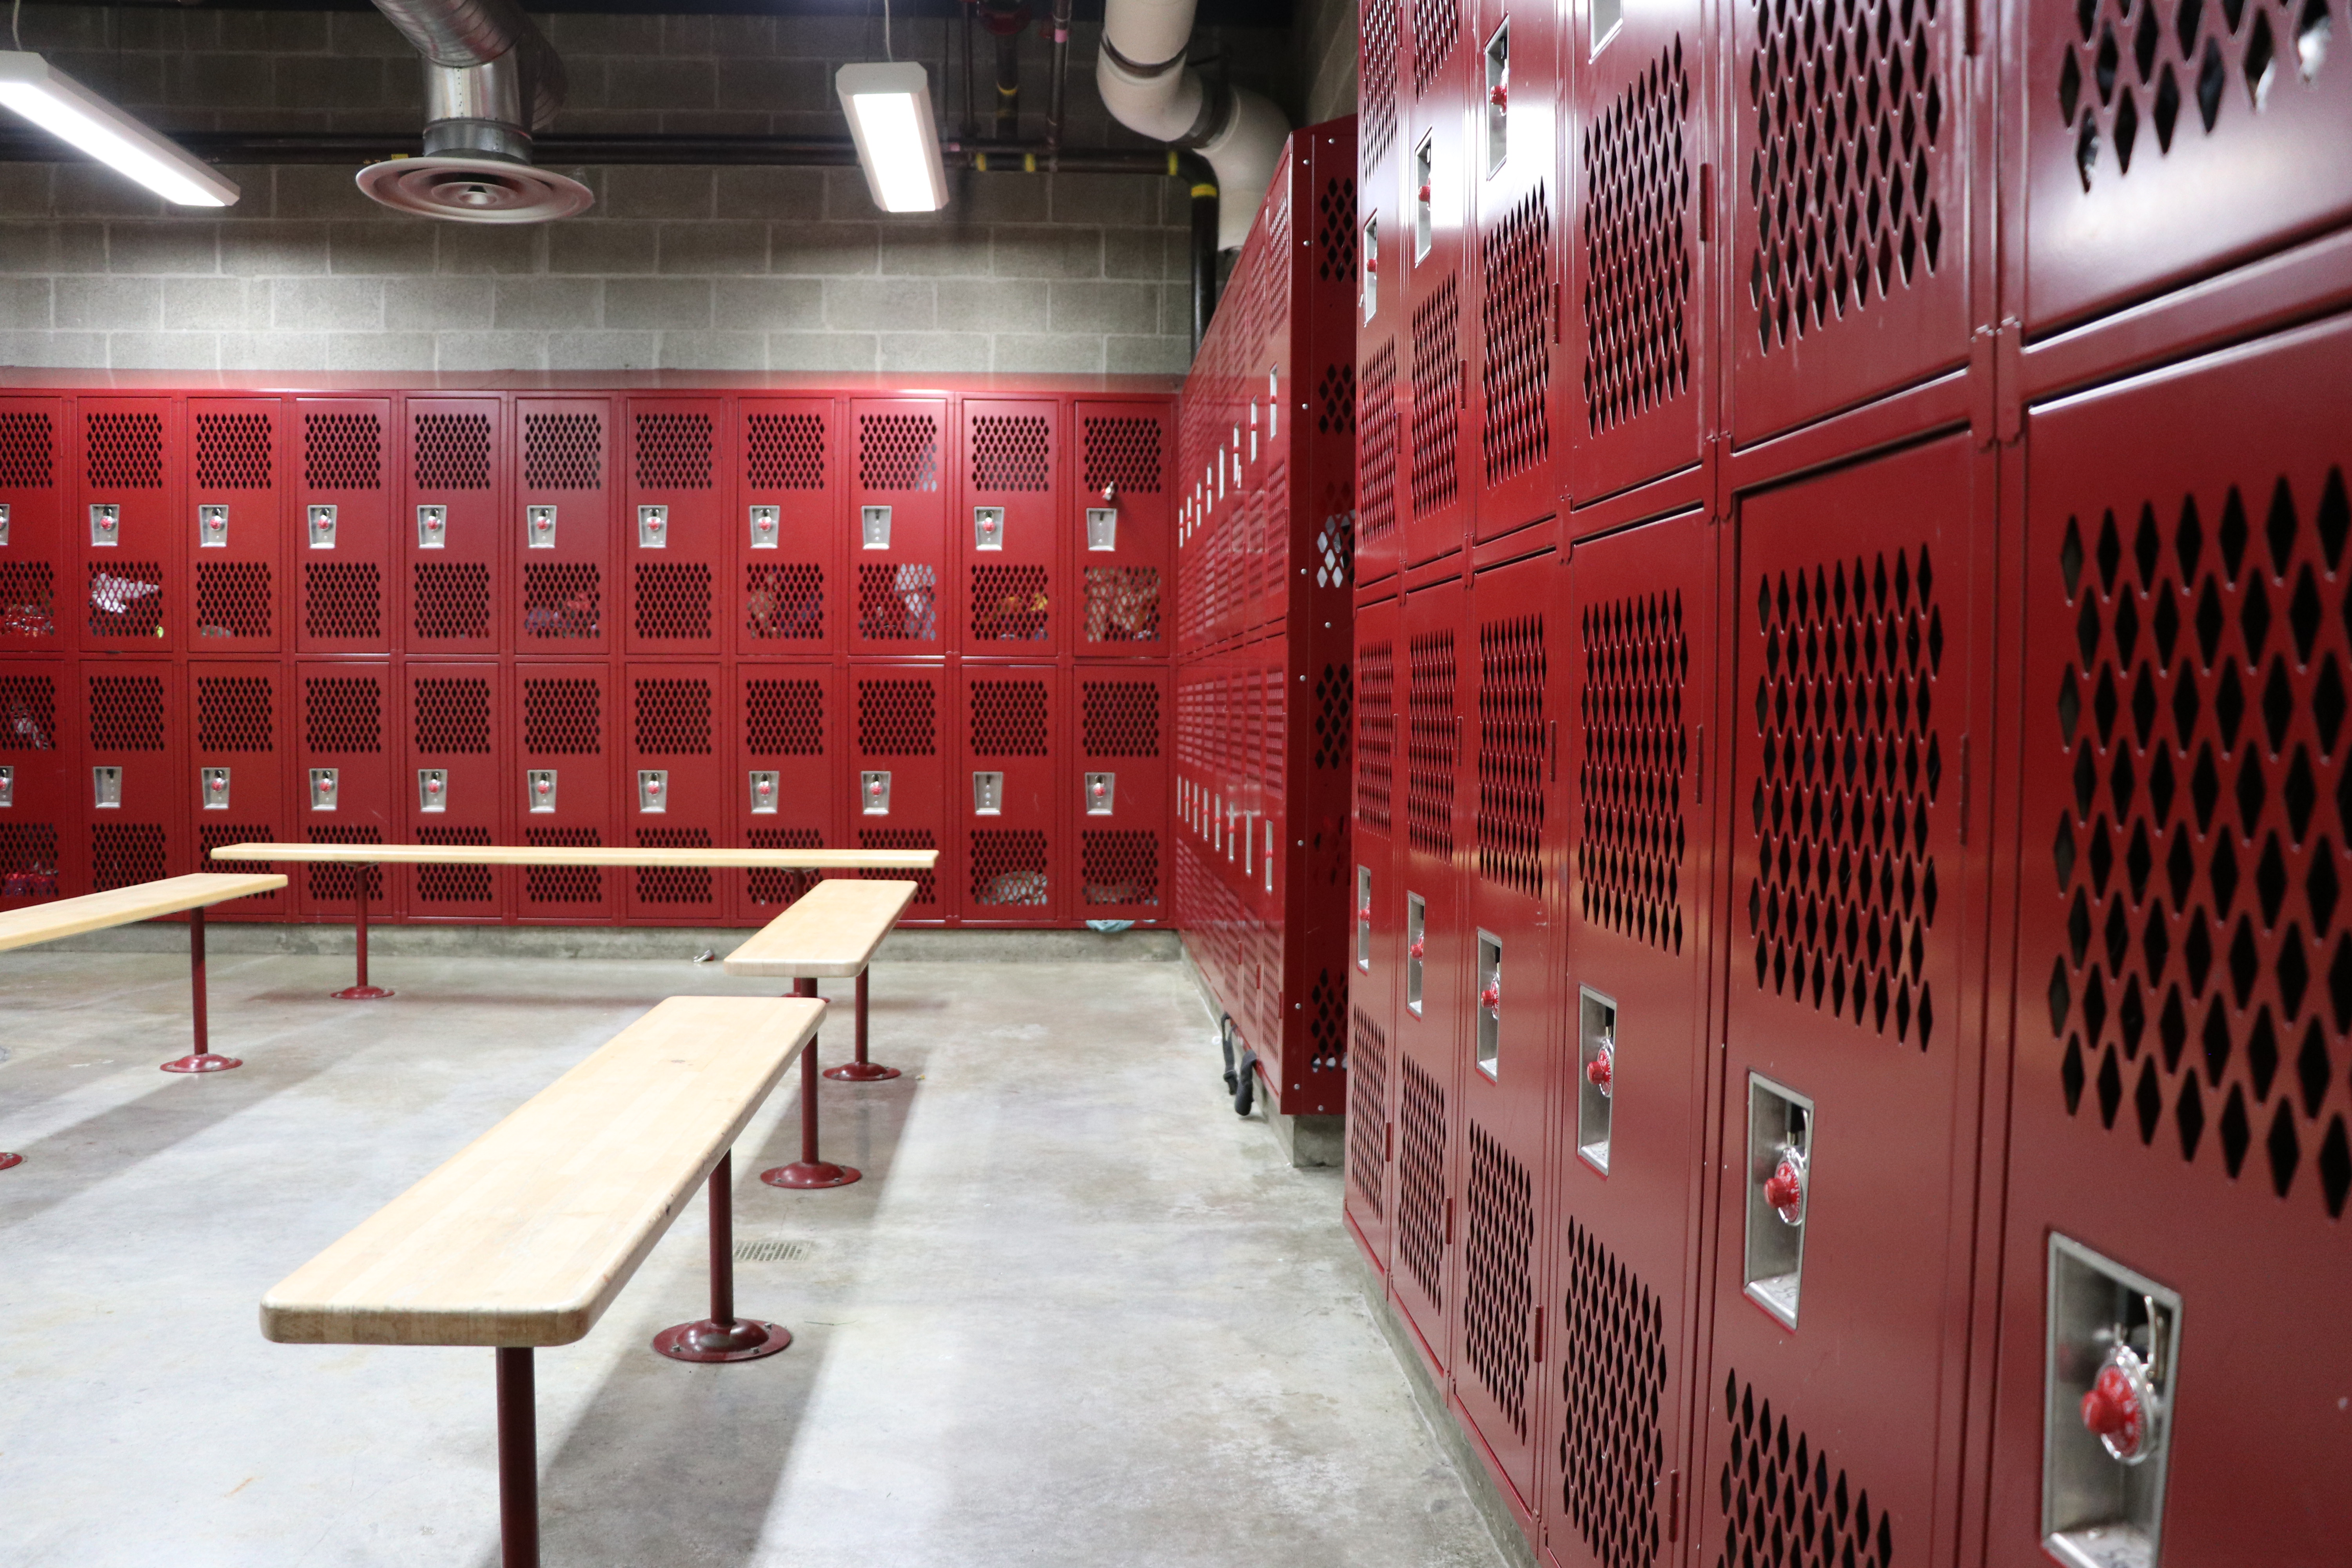 Empty locker room, red lockers and benches.